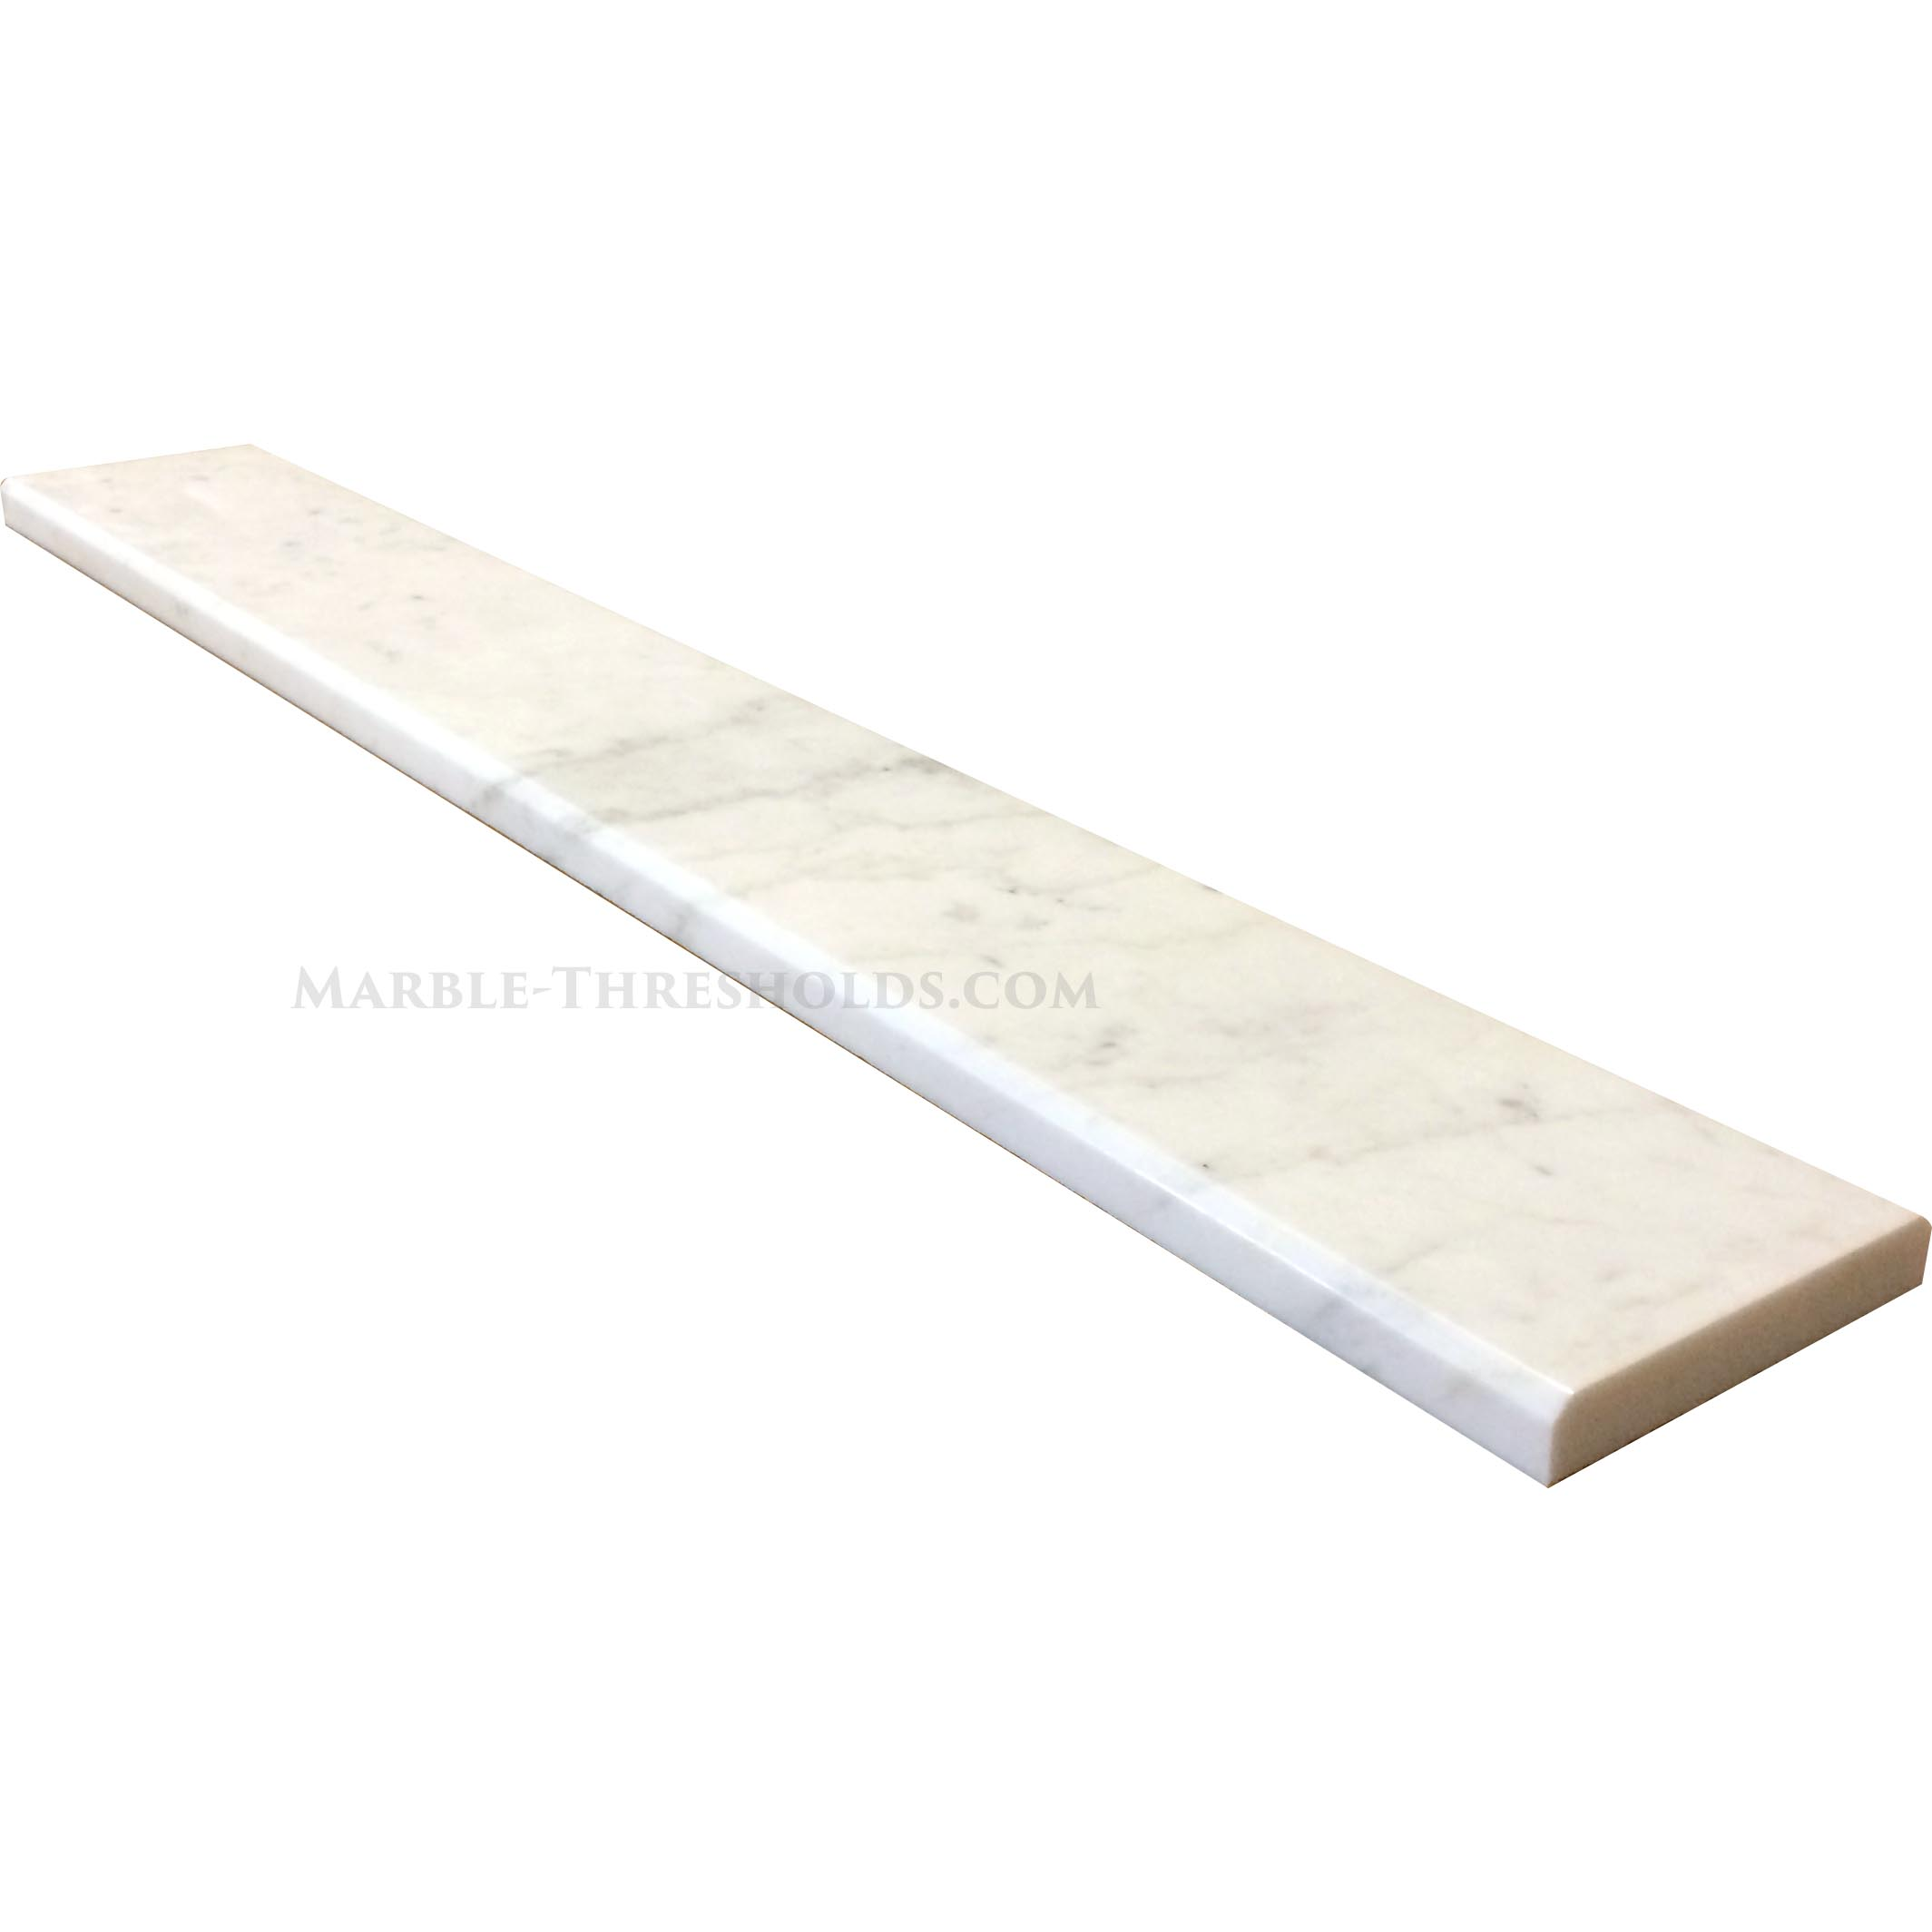 Calacatta Gold Marble Threshold  sc 1 st  Marble Thresholds & Calacatta Gold Marble Threshold - Door Saddle - Size 30 x 4 x 3/4 Inches